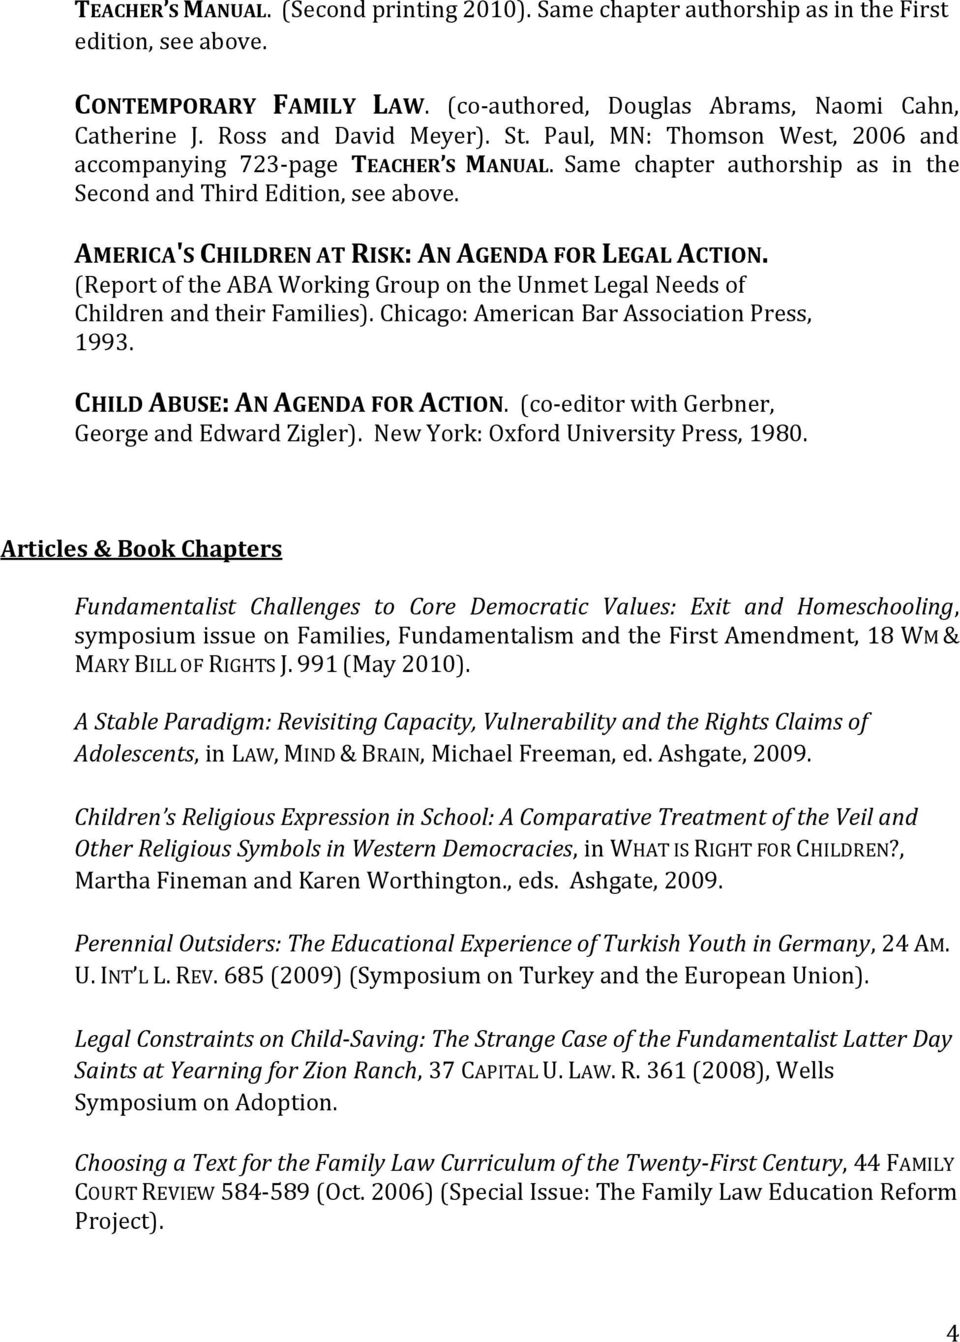 AMERICA'S CHILDREN AT RISK: AN AGENDA FOR LEGAL ACTION. (Report of the ABA Working Group on the Unmet Legal Needs of Children and their Families). Chicago: American Bar Association Press, 1993.